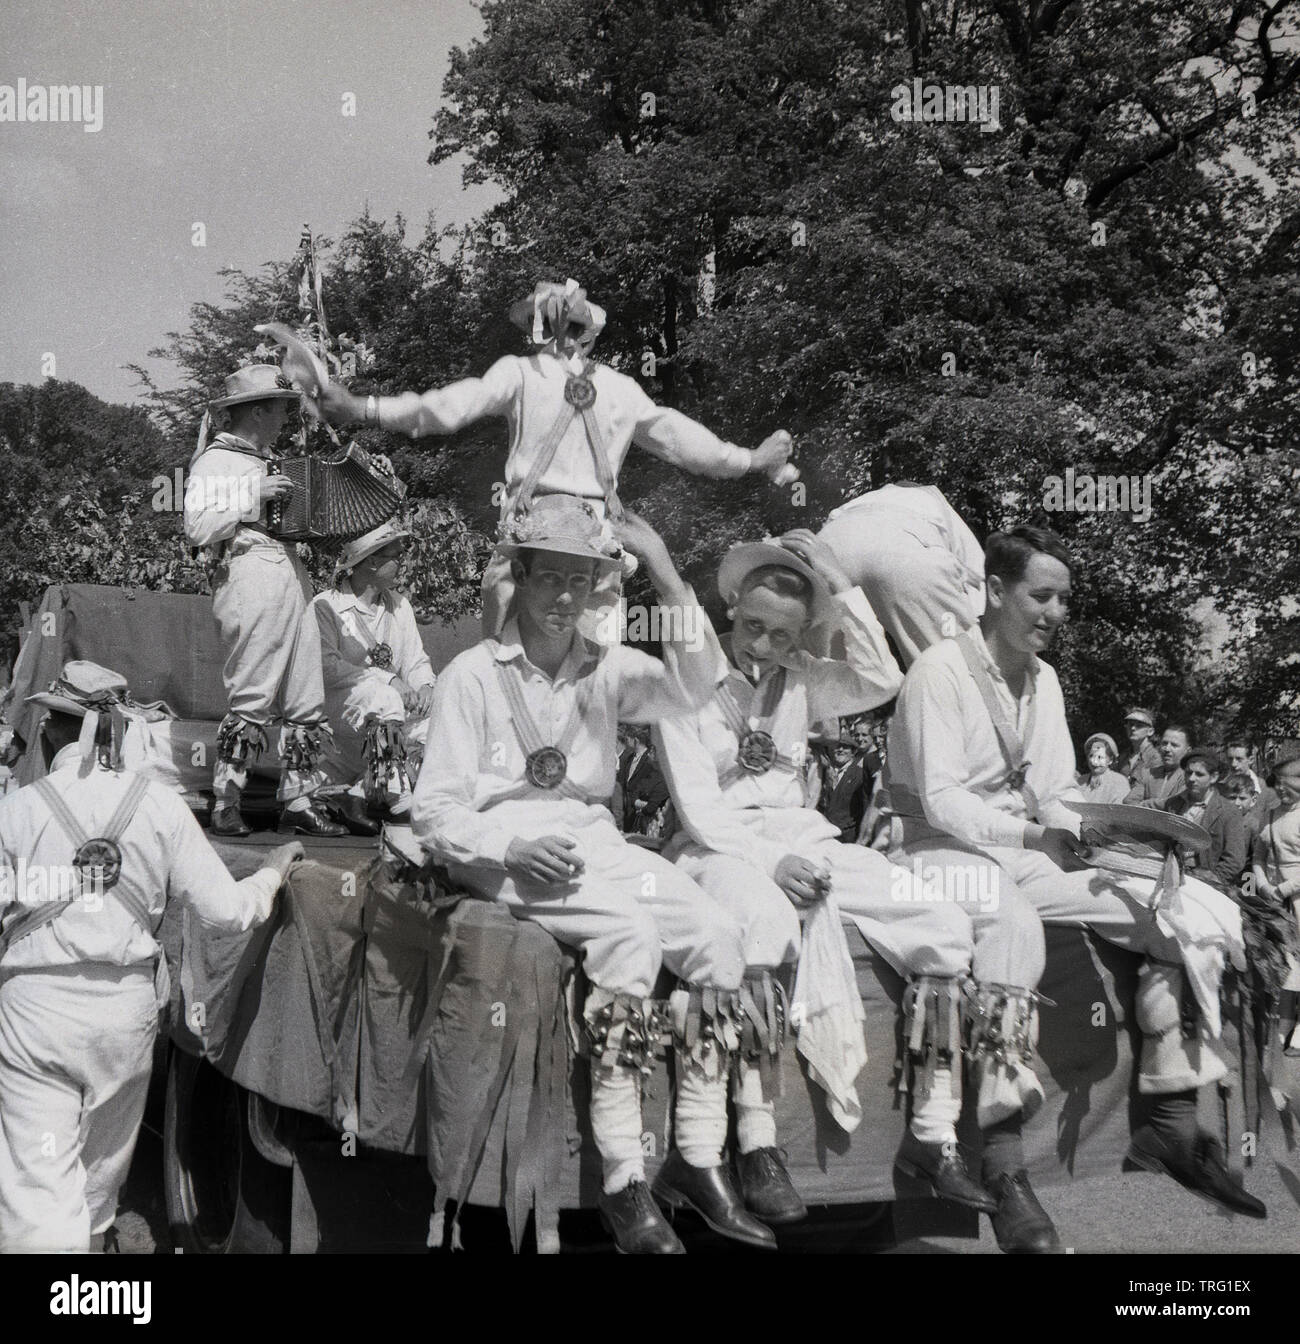 1950s, historical, On a hot summers day, a group of male morris dancers playing on a carnival float, with three of them taking a break from the dancing to enjoy a rest and a cigarette, England, UK. Morris dancing is a traditional English folk dance and an important part of summer fetes and carnivals, Stock Photo